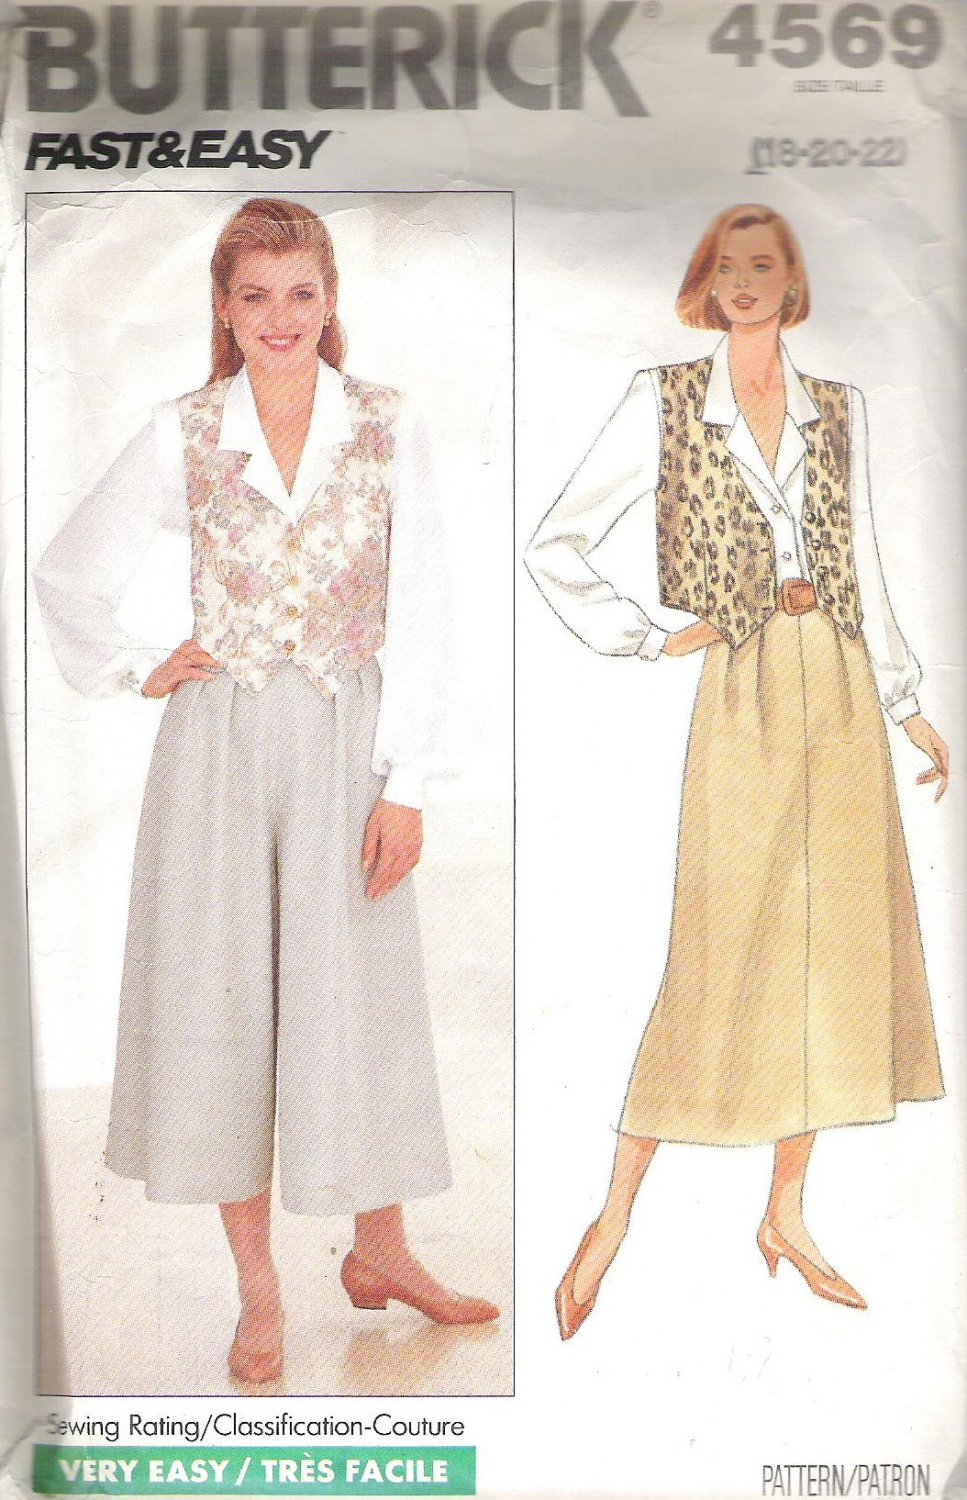 1990 Butterick 4569 Pattern Blouse, Vest, Skirt and Culottes  Size 18-22  Cut to 20